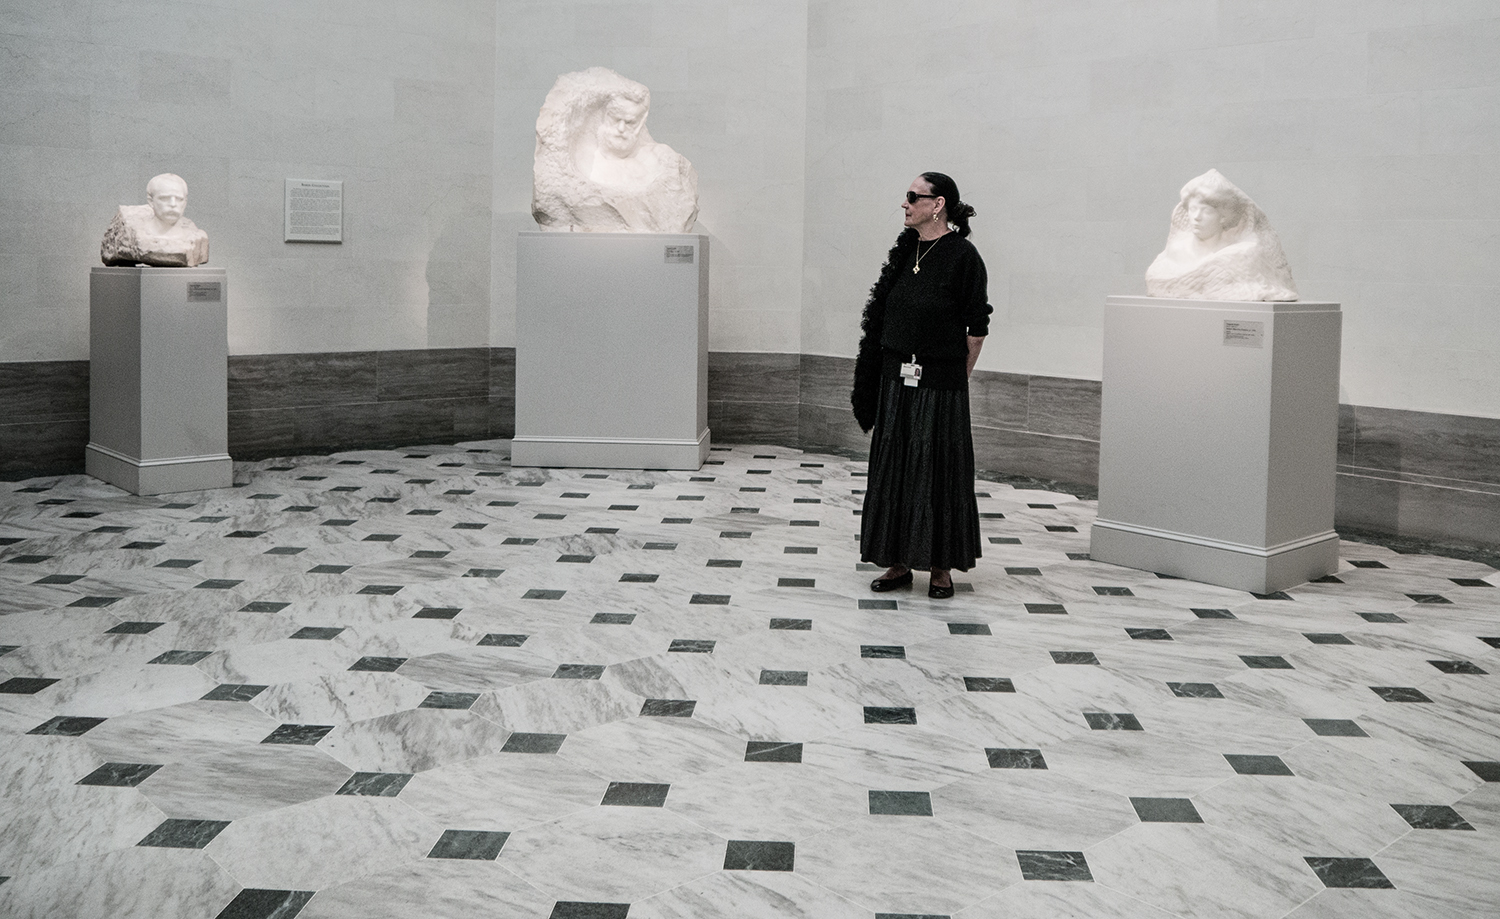 This stylish docent was an irresistible subject for an environmental portrait in the Rodin Gallery. The black tiles drawthe eye straight to her and the sculptures. She was very gracious about posing for me. It was just sheer luck that I happened upon the scene when she was the only person in the gallery.